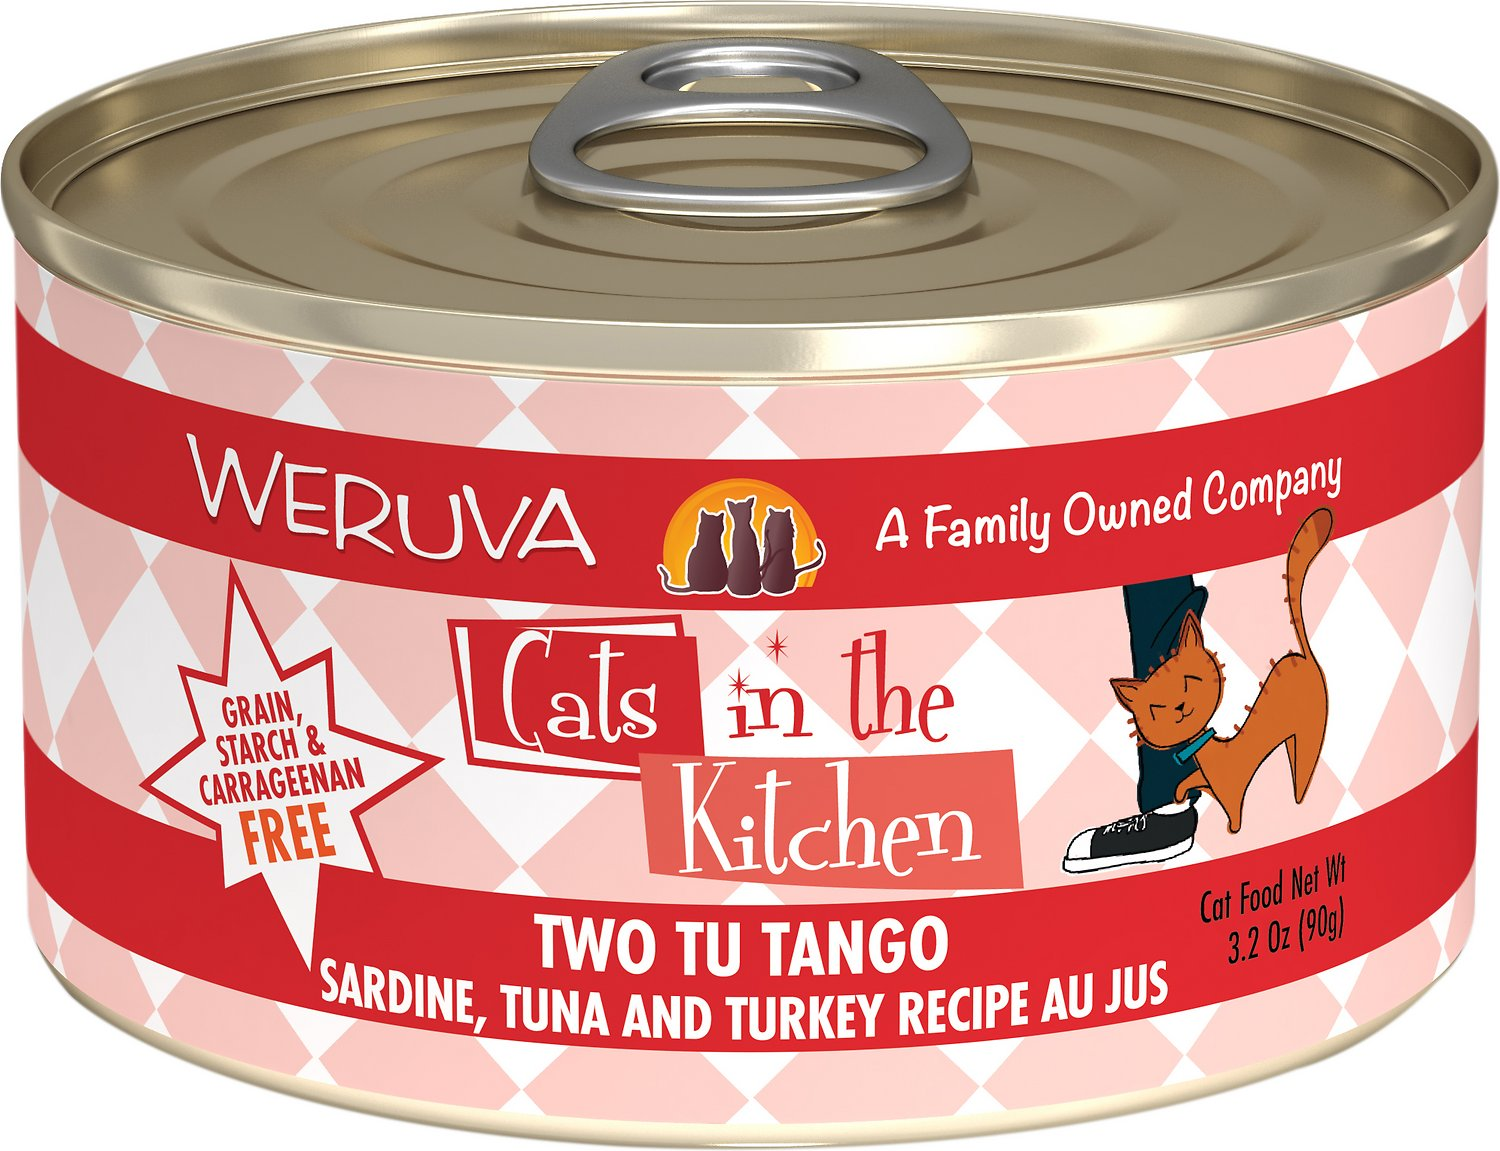 Weruva Cats in the Kitchen Two Tu Tango Sardine, Tuna & Turkey Au Jus Grain-Free Wet Cat Food, 3.2-oz